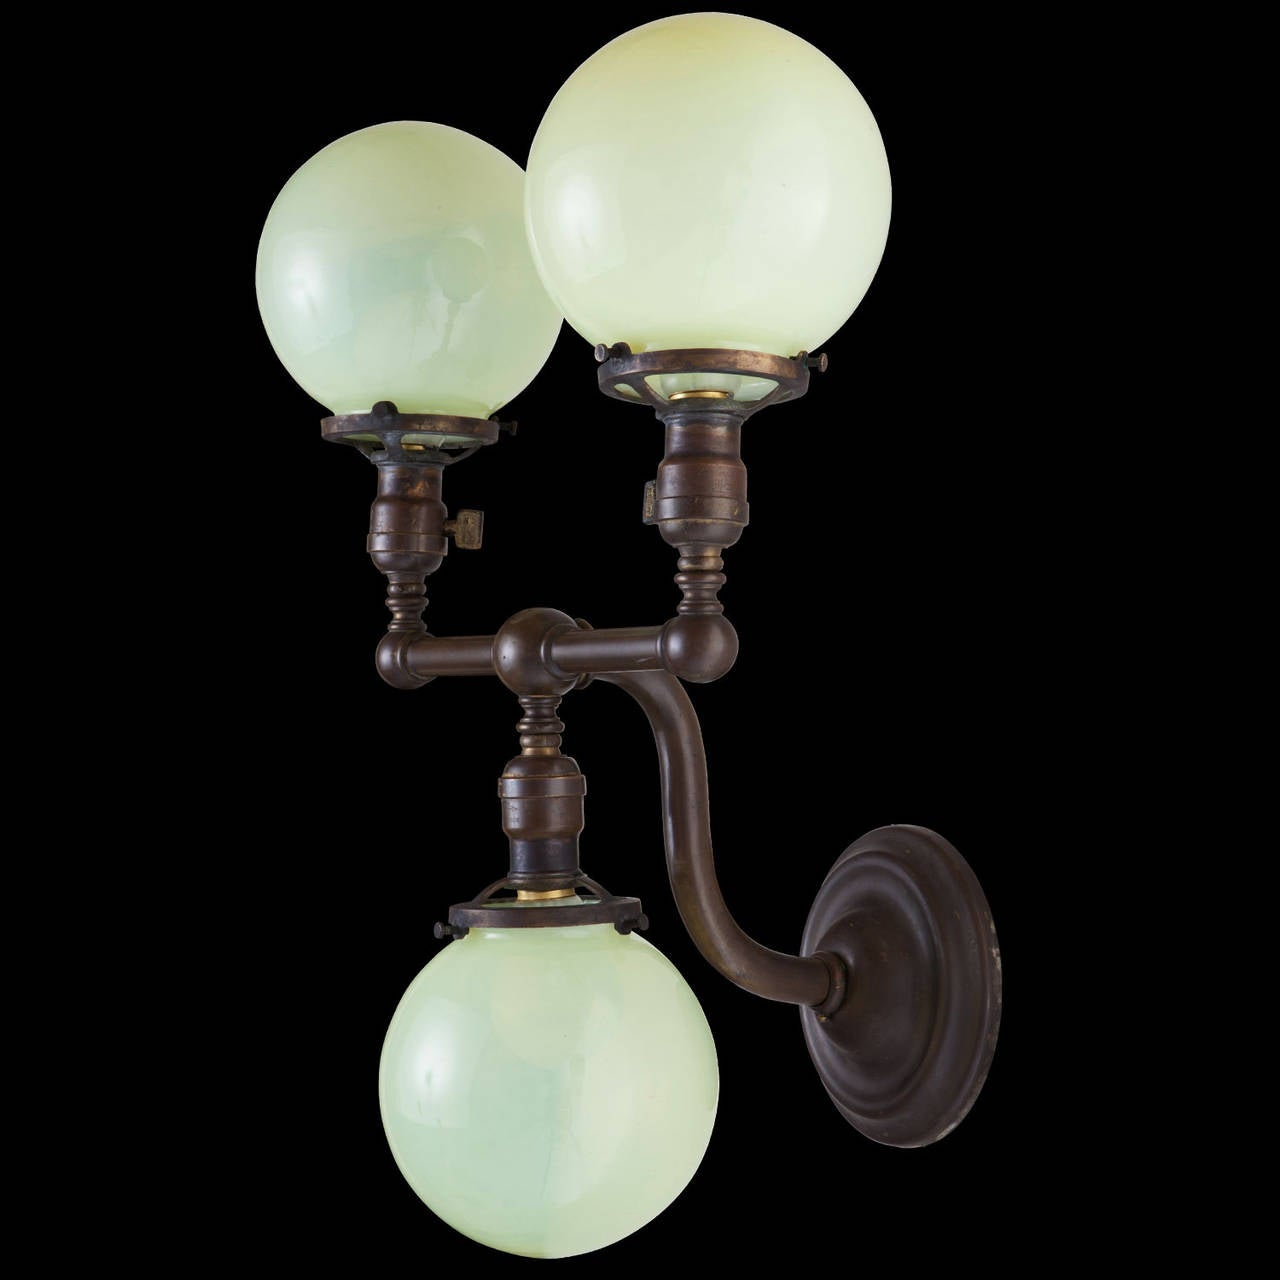 Wall Sconce Glass Globes : Pair of Brass and Vaseline Glass Three-Globe Sconces For Sale at 1stdibs